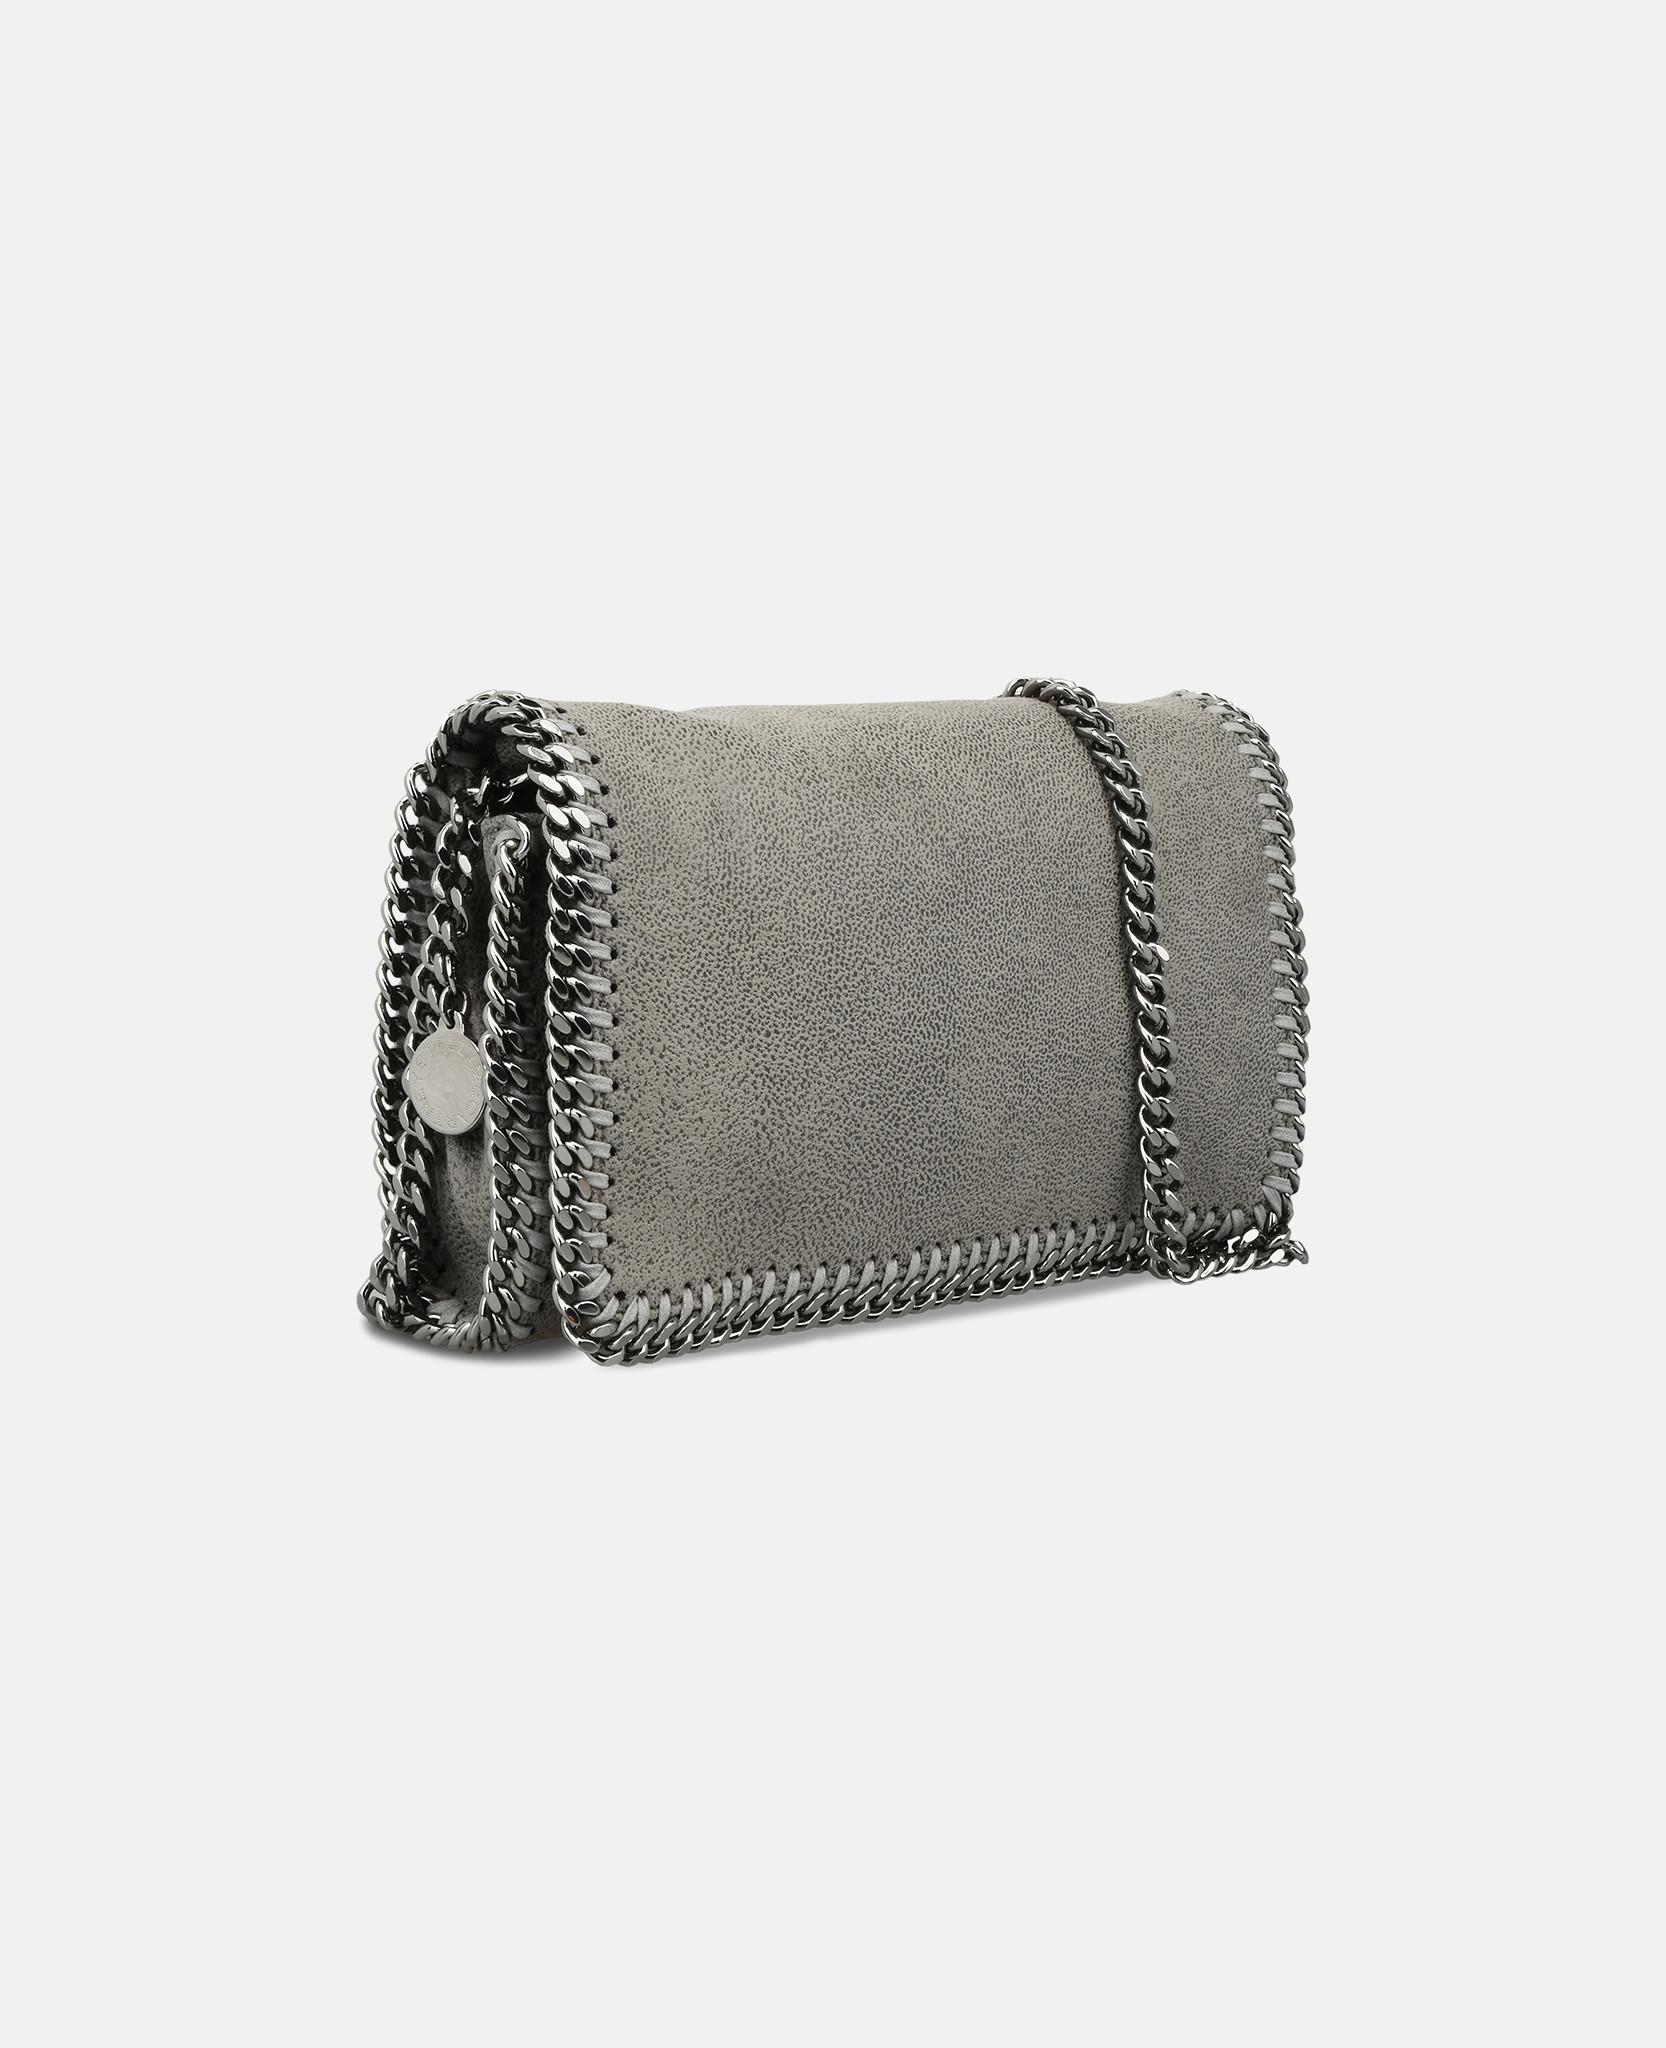 663f27f8f79e3 Lyst - Stella McCartney Black Falabella Cross Body Bag in Gray